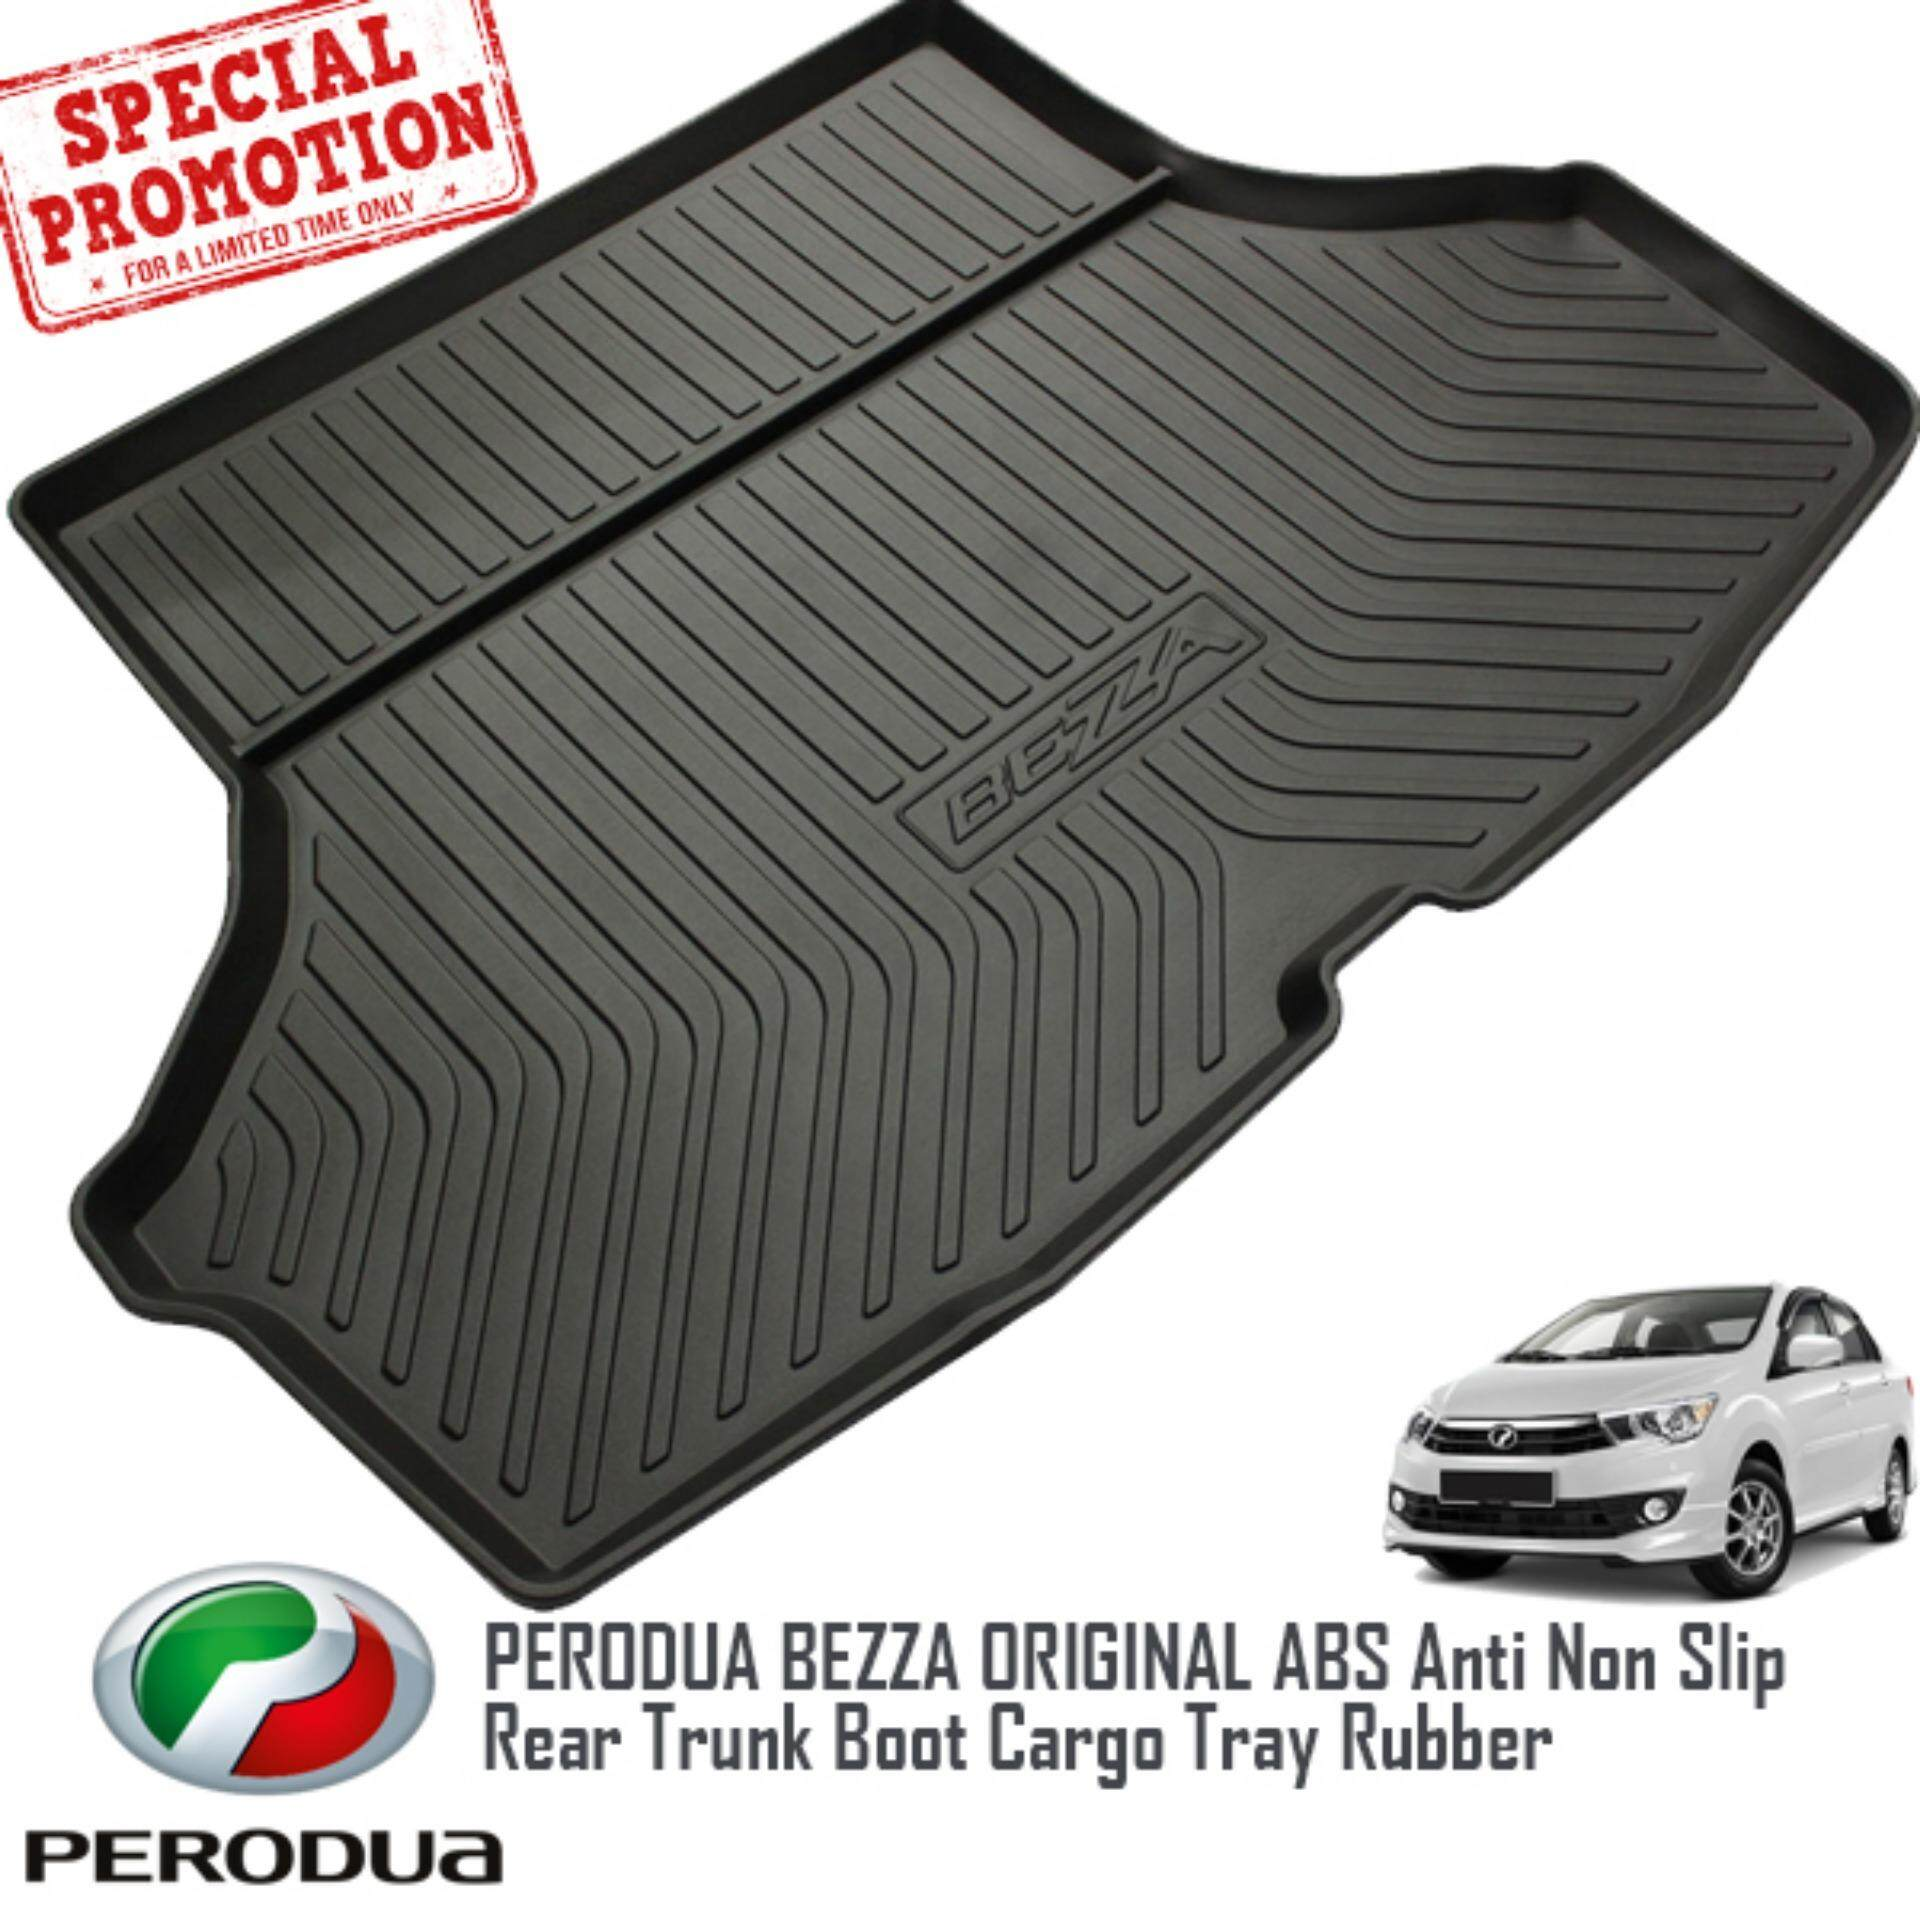 Pg Mall Malaysia Online Shopping Buy Sell Smartphones Tablets Honda Pioneer Cargo Tray Perodua Bezza Original Abs Rubber Anti Non Slip Rear Trunk B